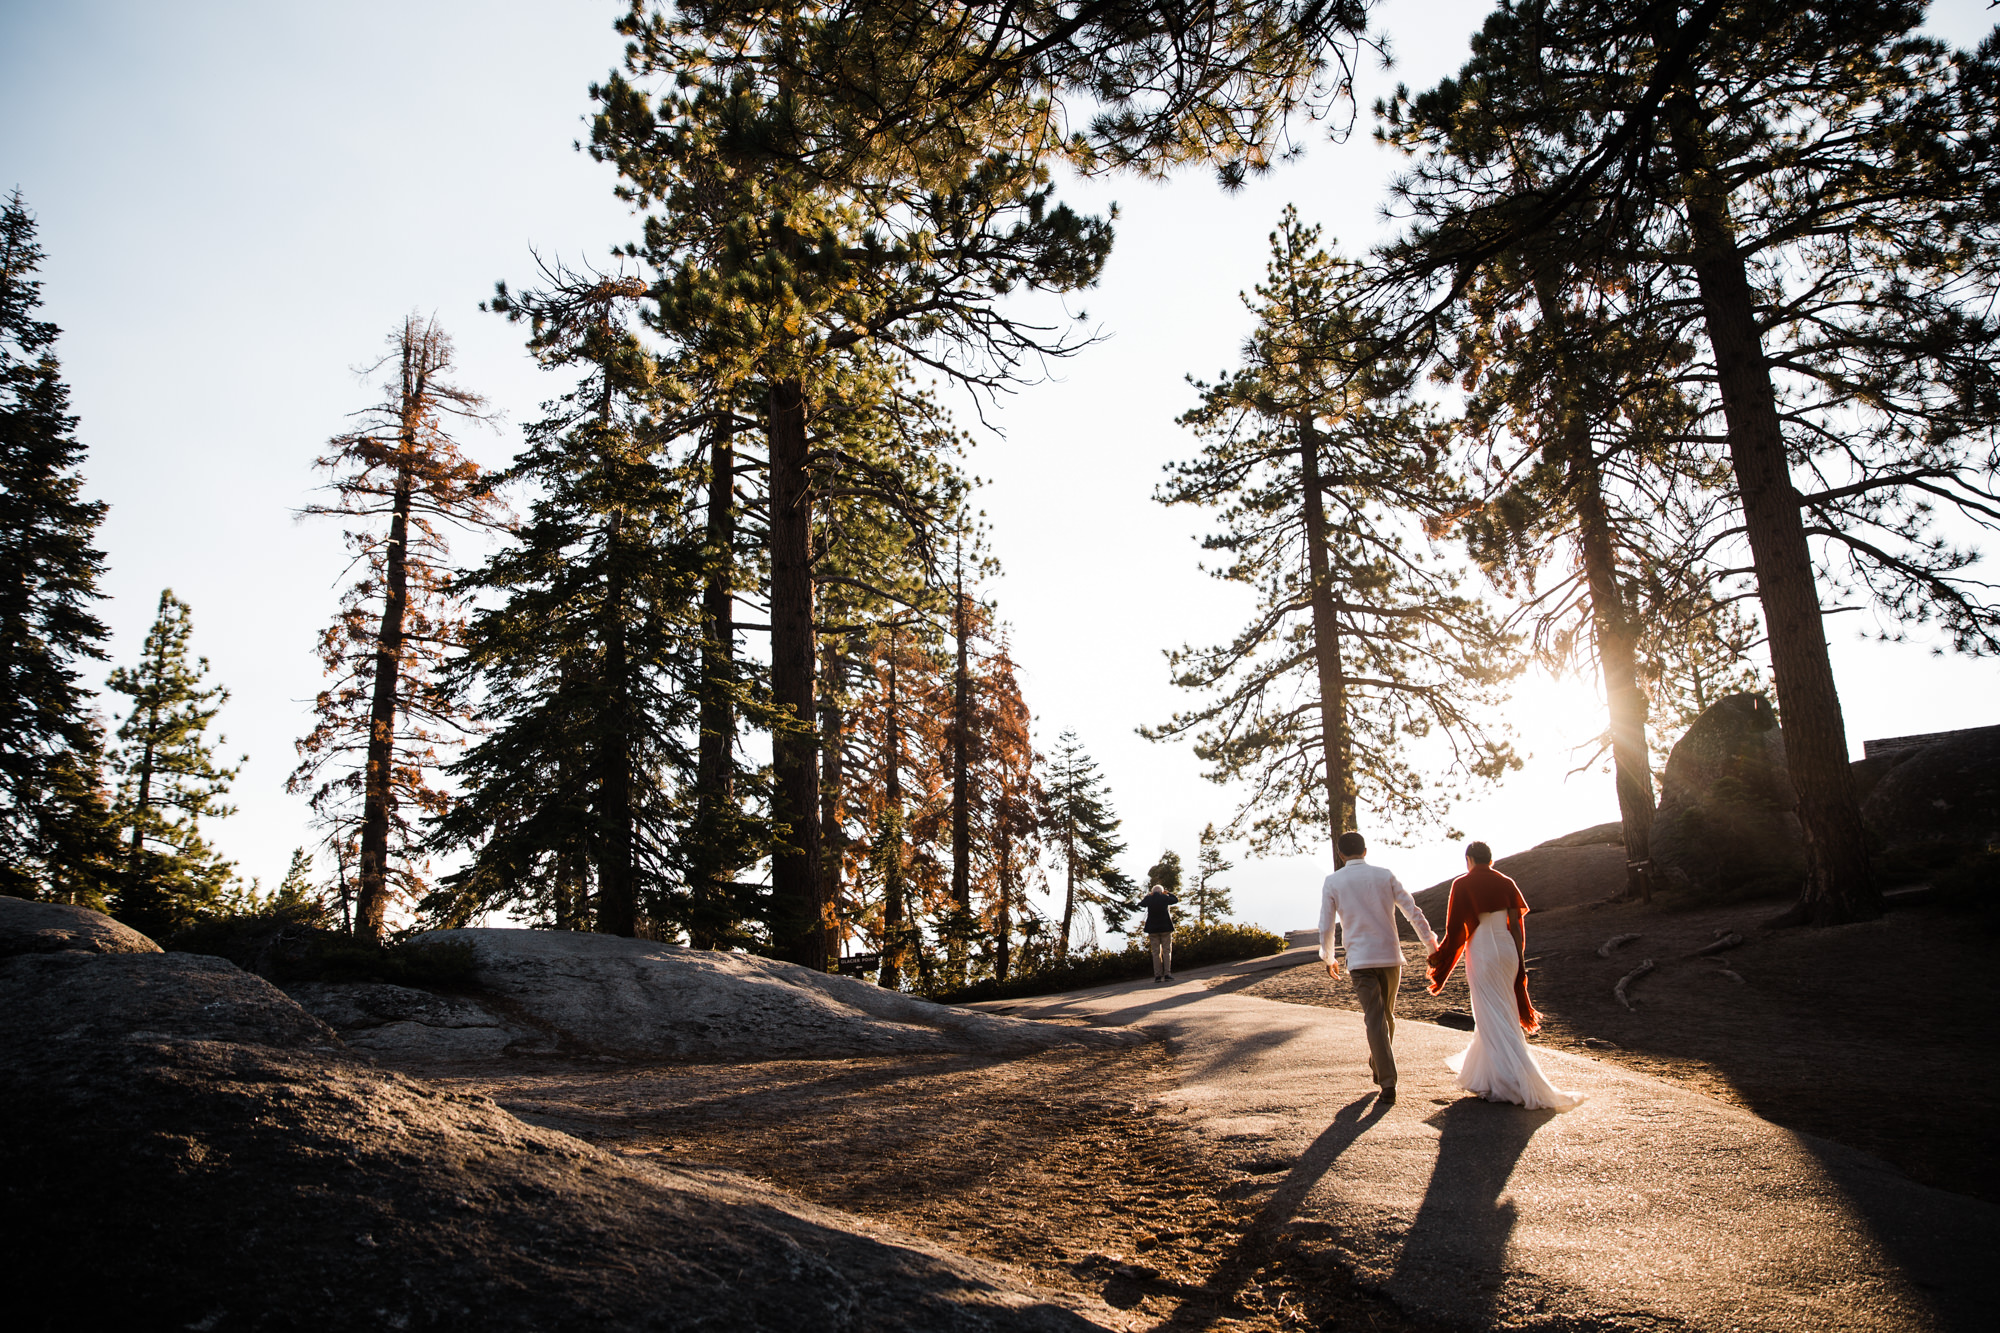 yosemite-destination-wedding-photographer-42.jpg